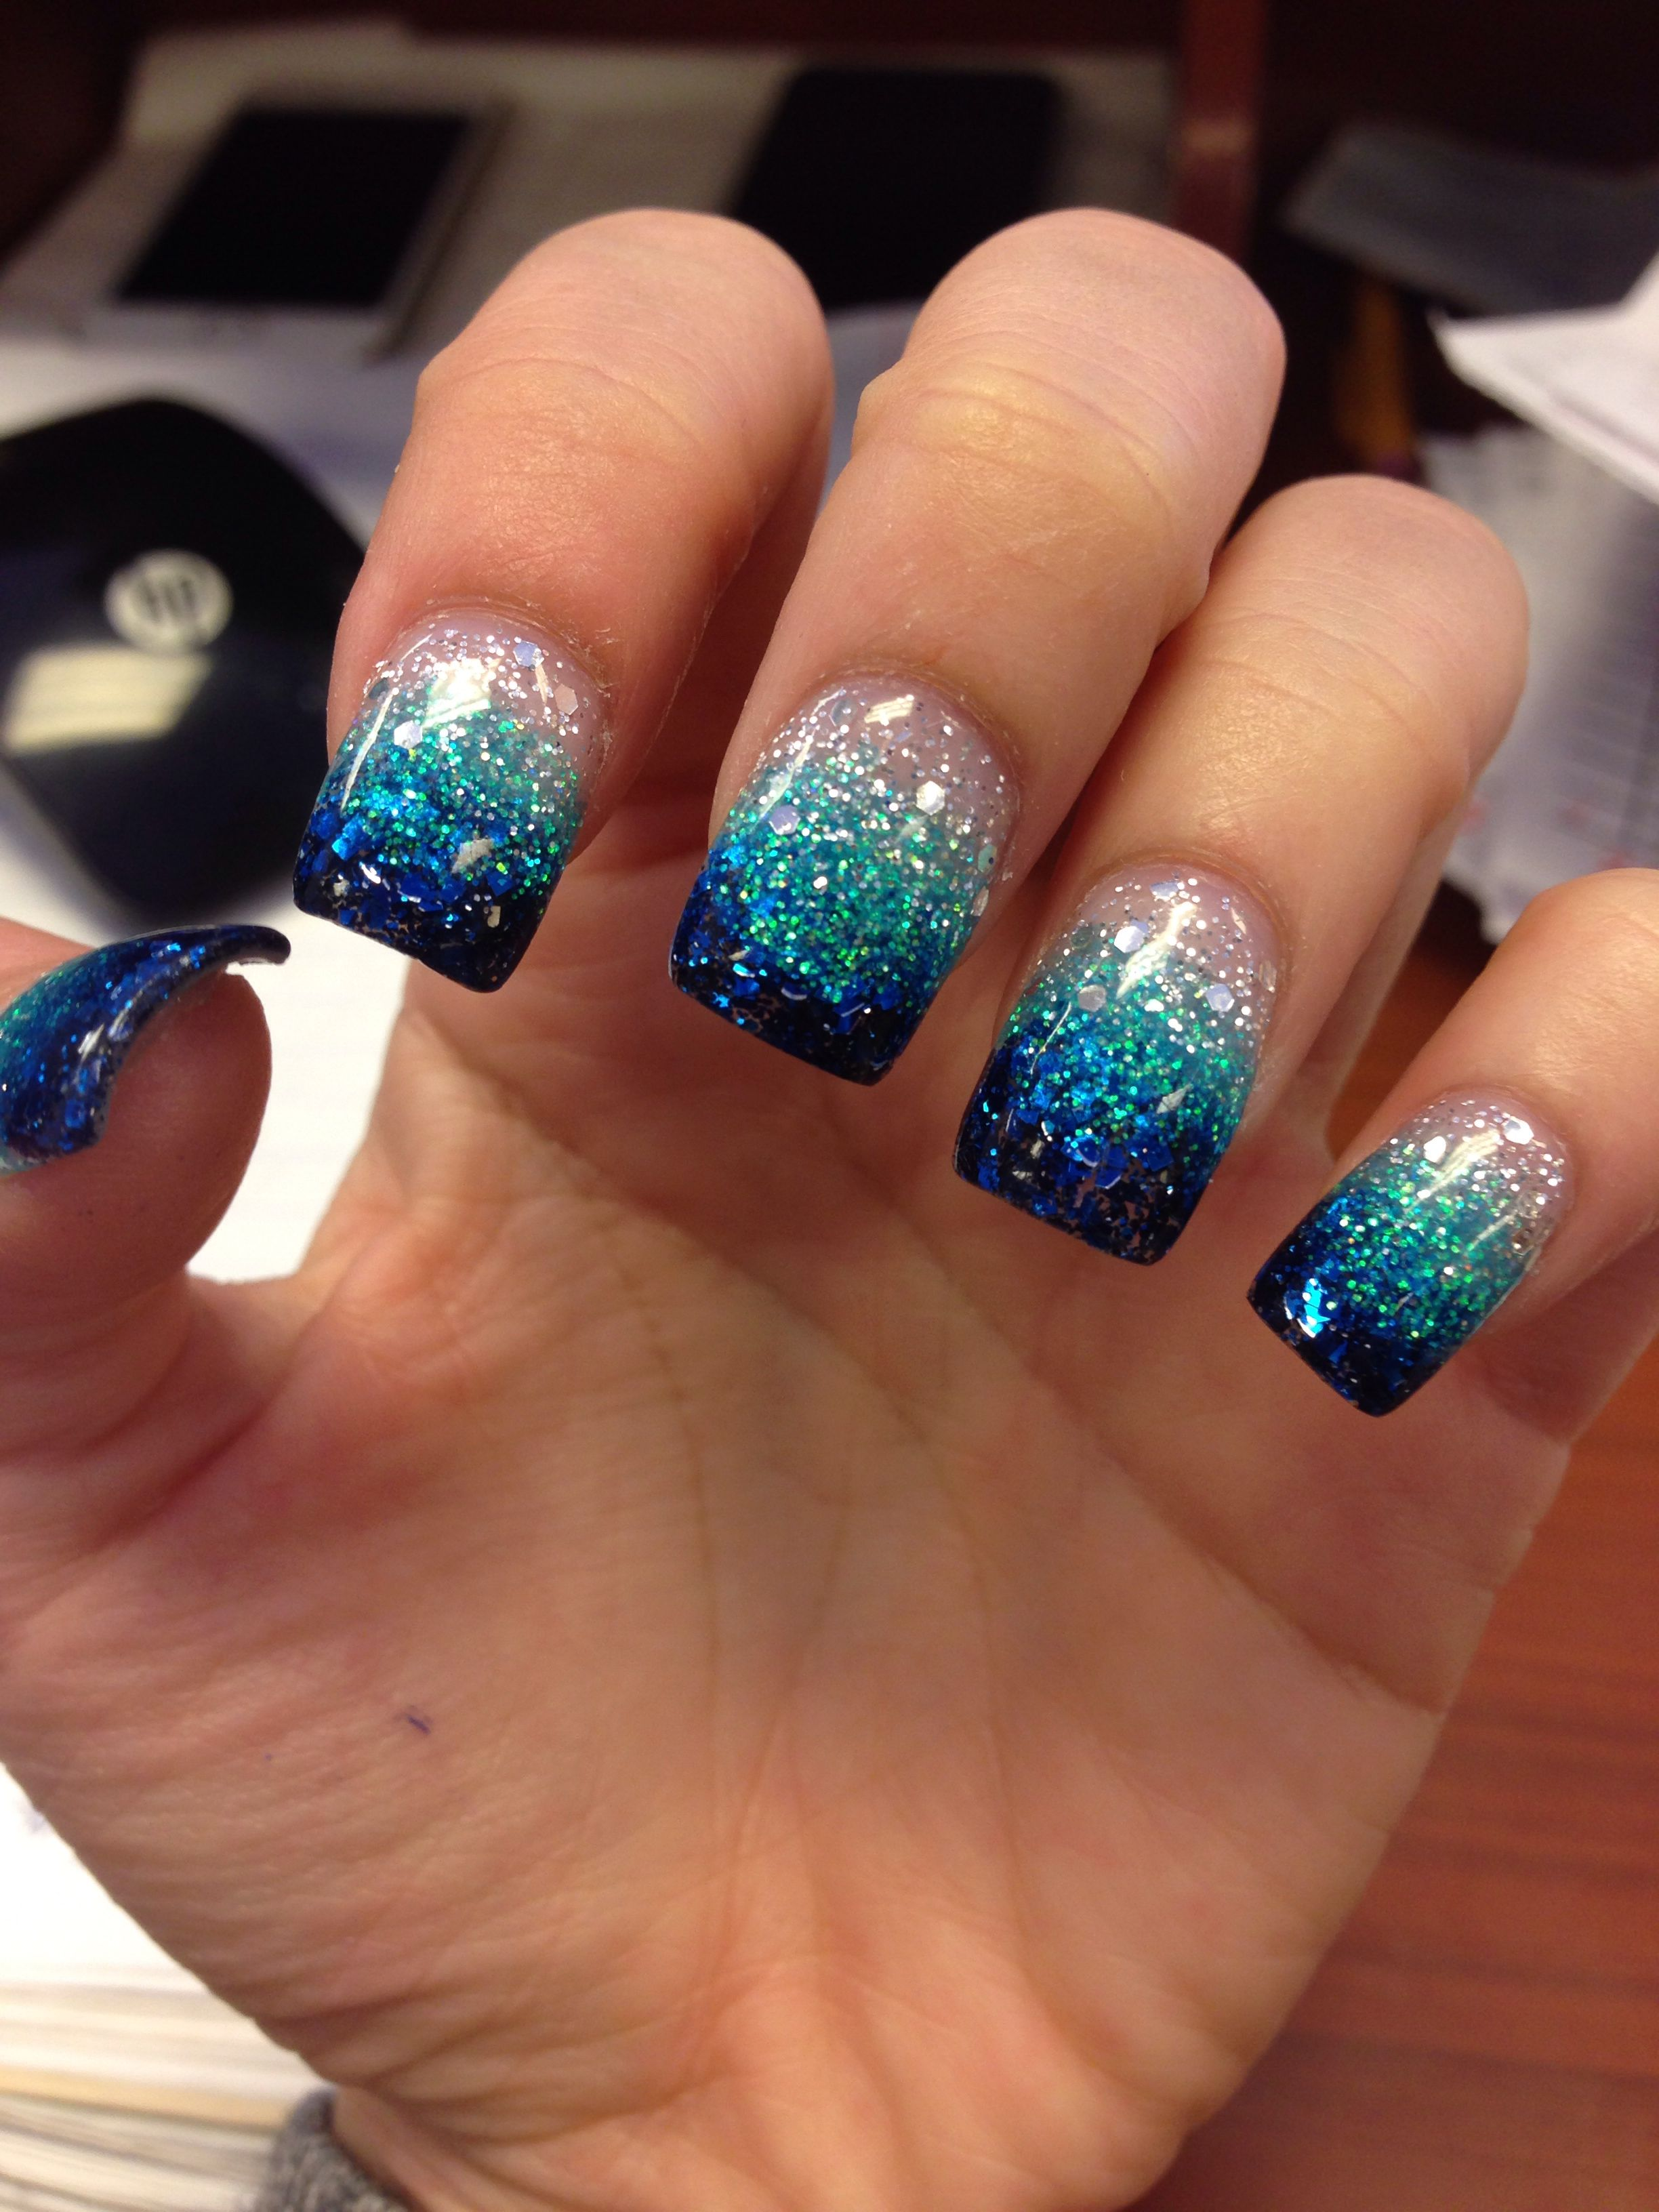 Blue Teal Glitter Faded Nails Things To Wear Nails Nail Designs